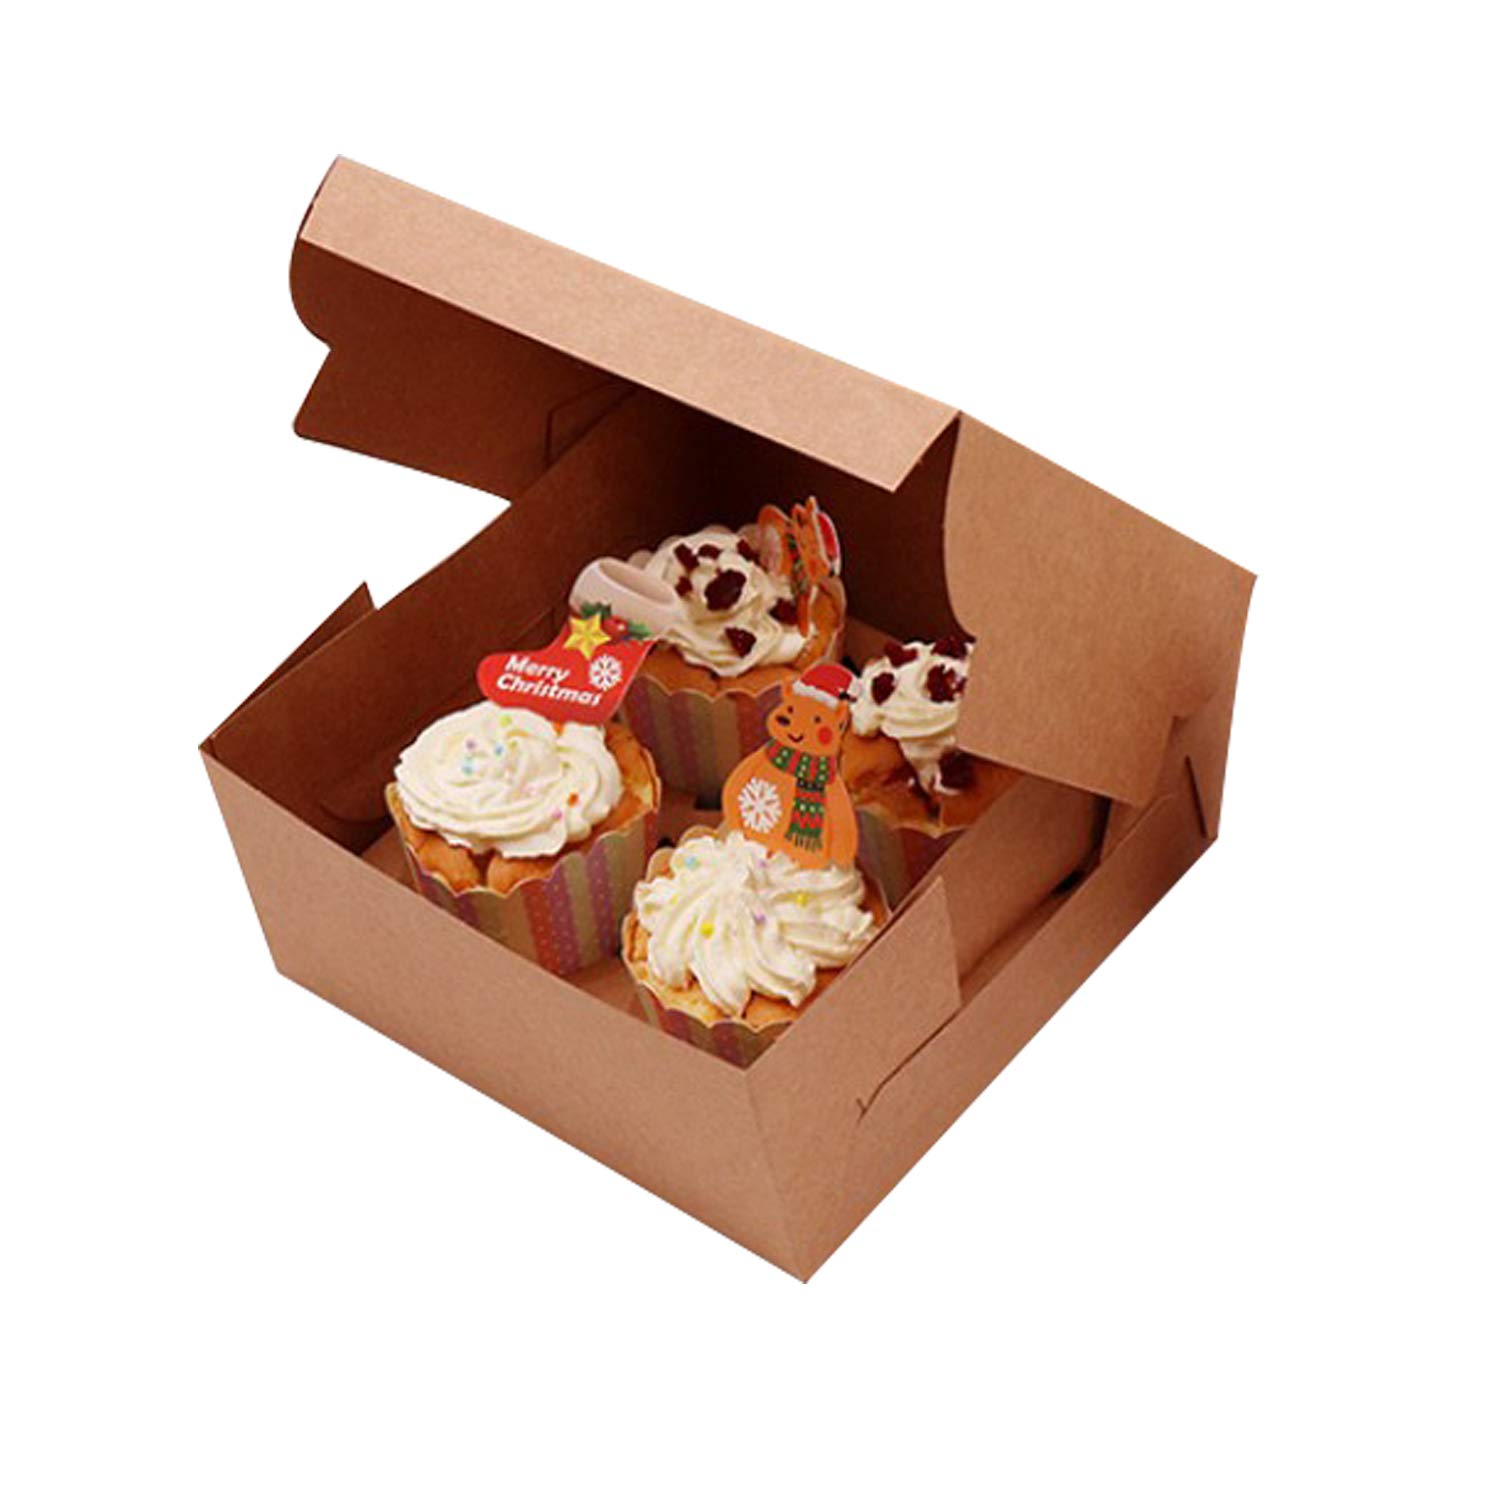 15 Pack Prudance Cake Boxes with Window 6 x 6 x 3 inch for Wedding Birthday Party Cupcake Boxes Individual Bakery Box for Cookies White